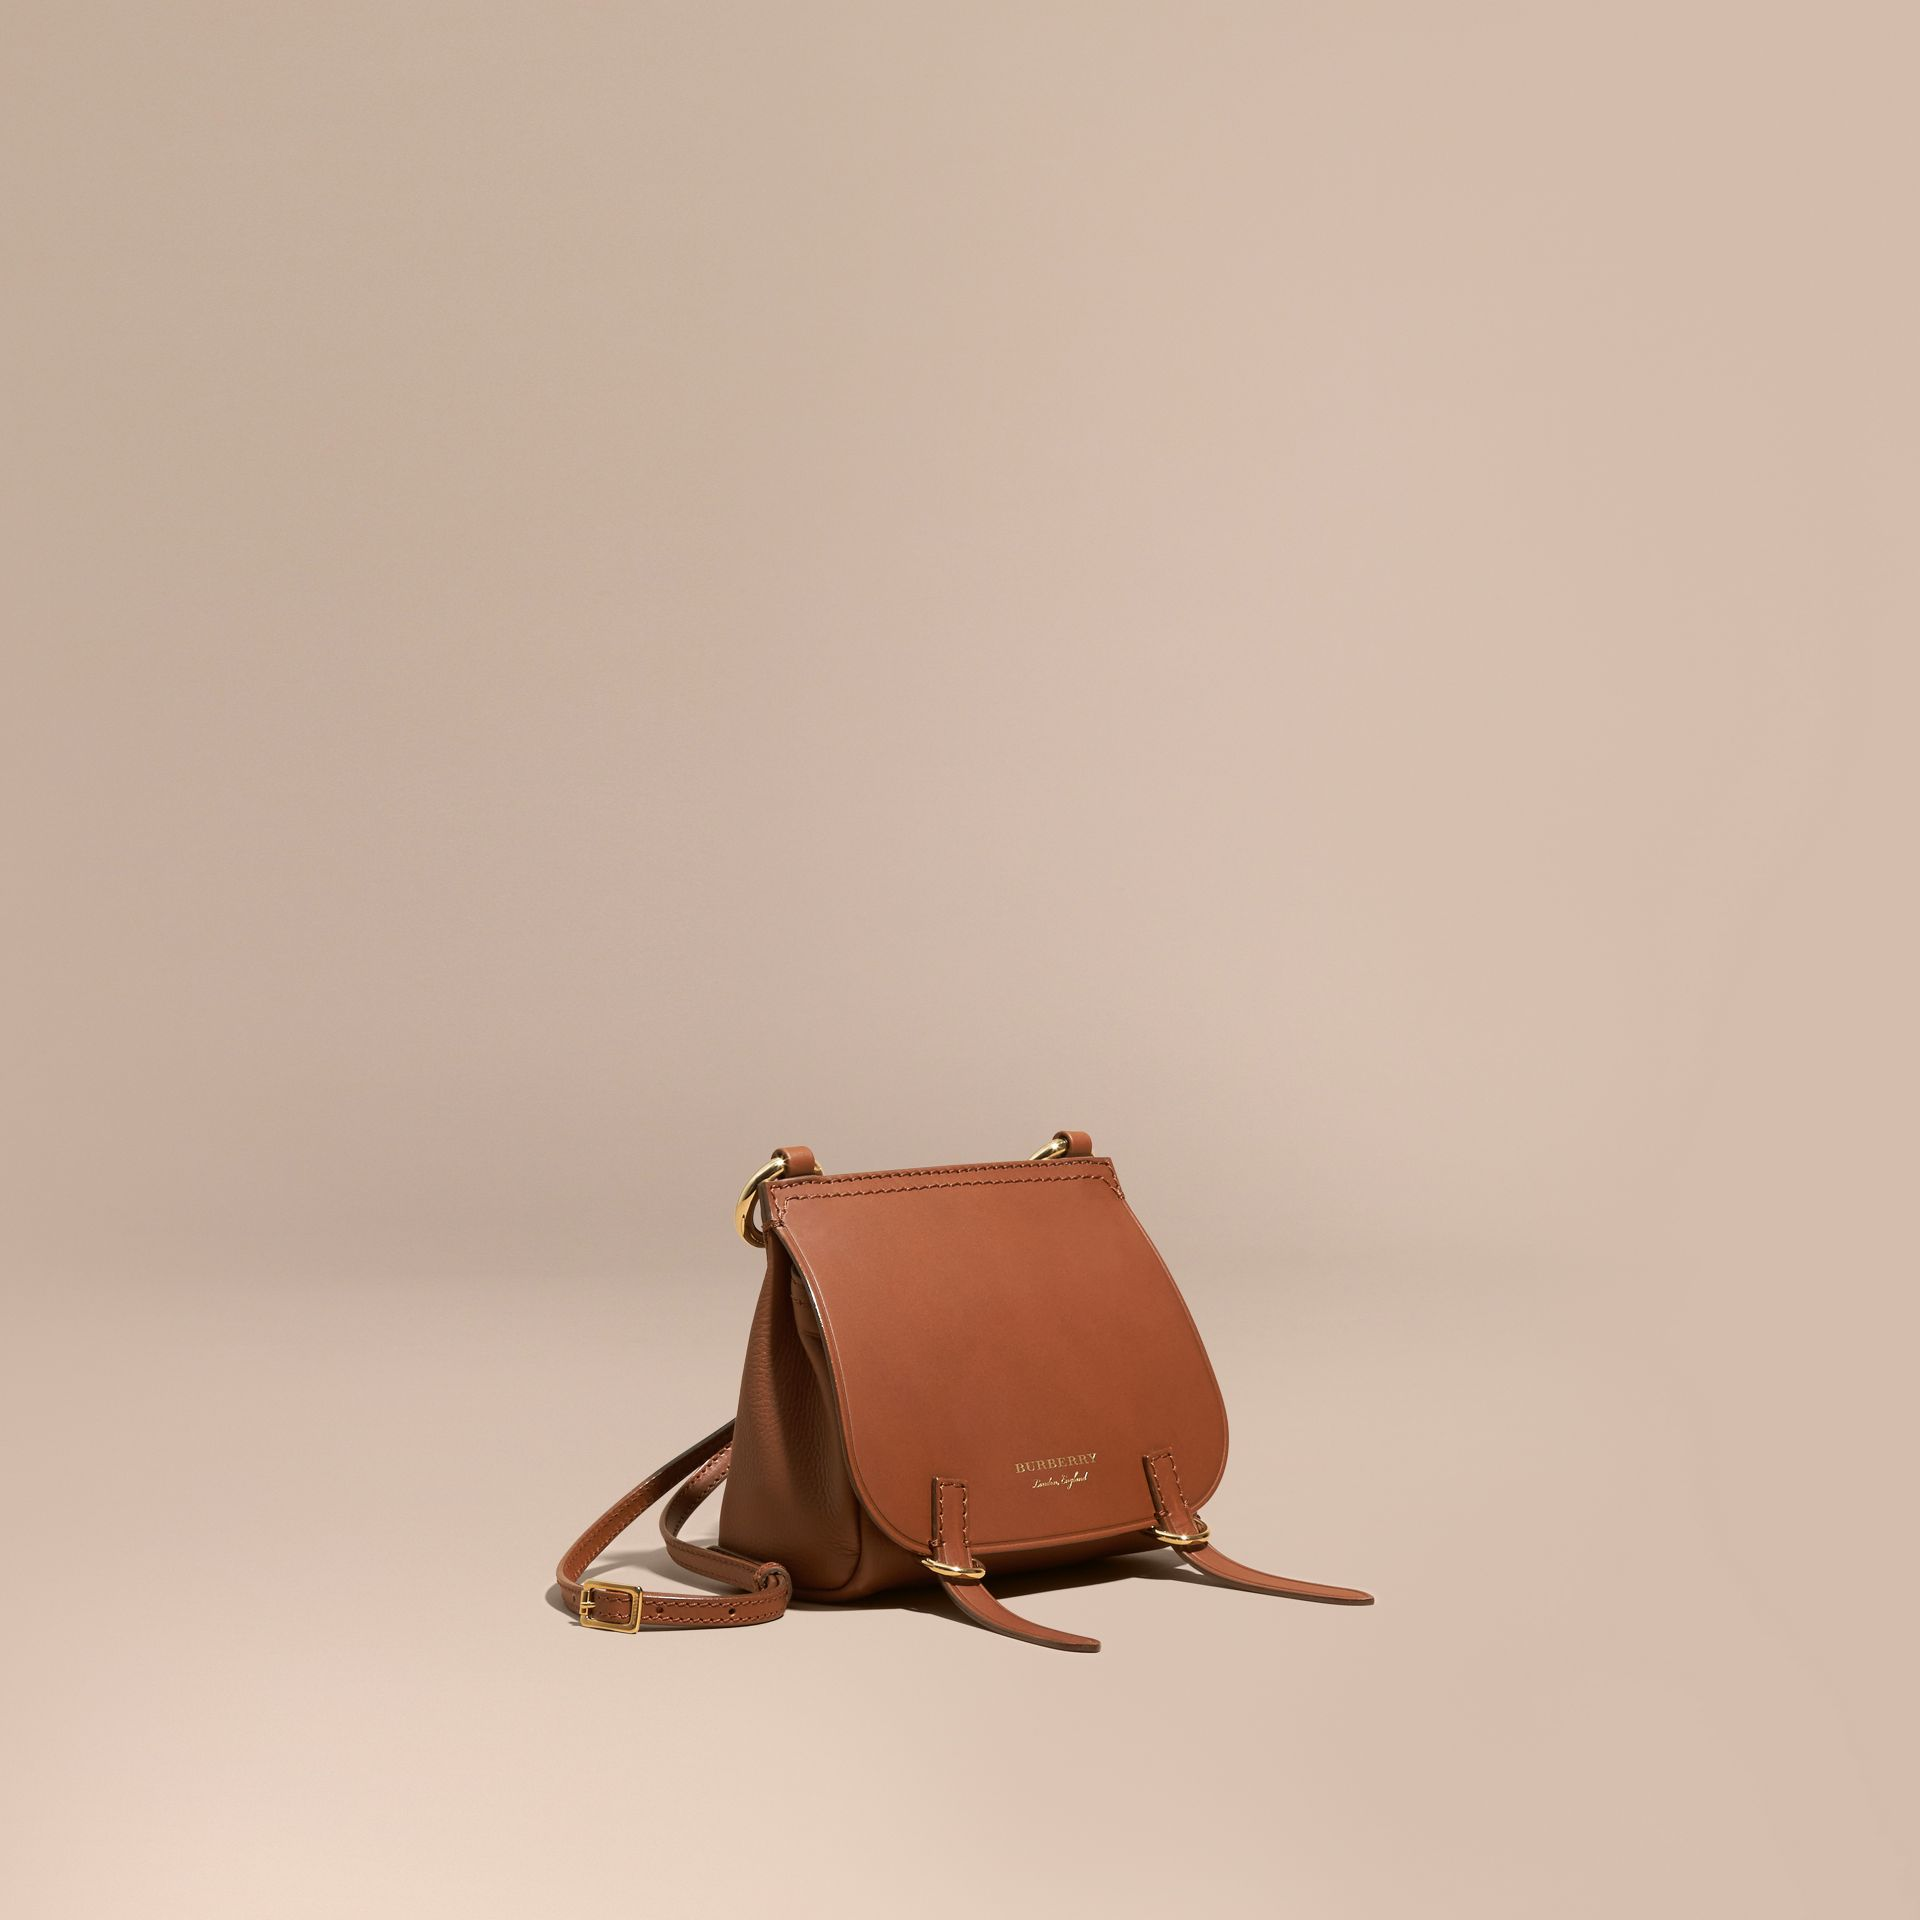 Borsa The Baby Bridle in pelle Marroncino - immagine della galleria 1